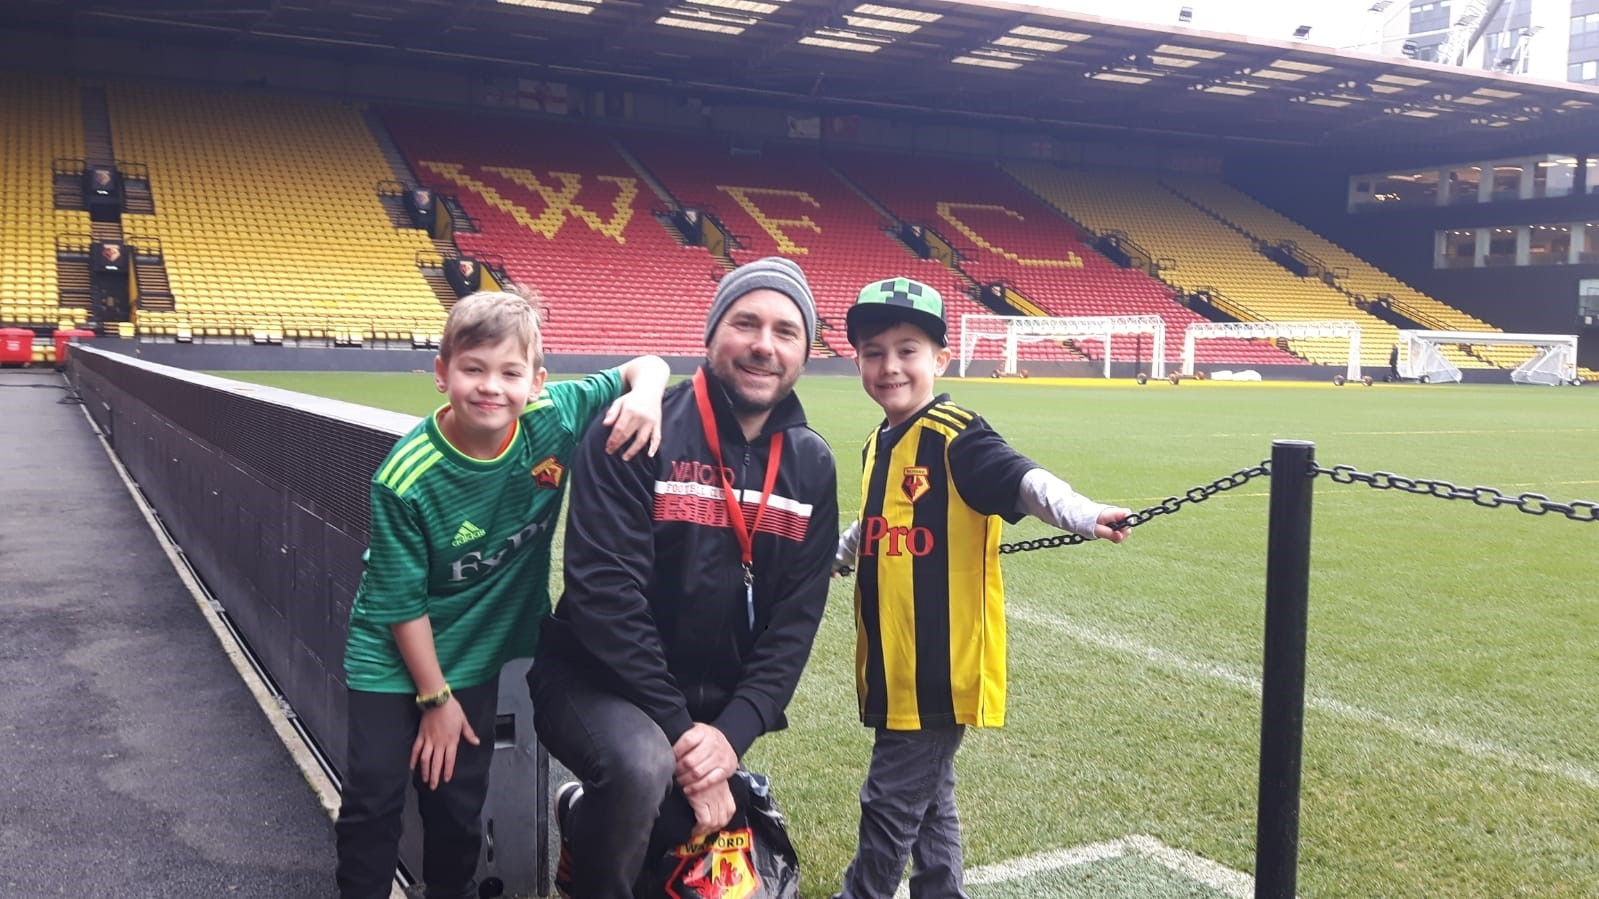 Matt Cootes pictured with his boys Harry (left) and Archie (right) at Vicarage Road